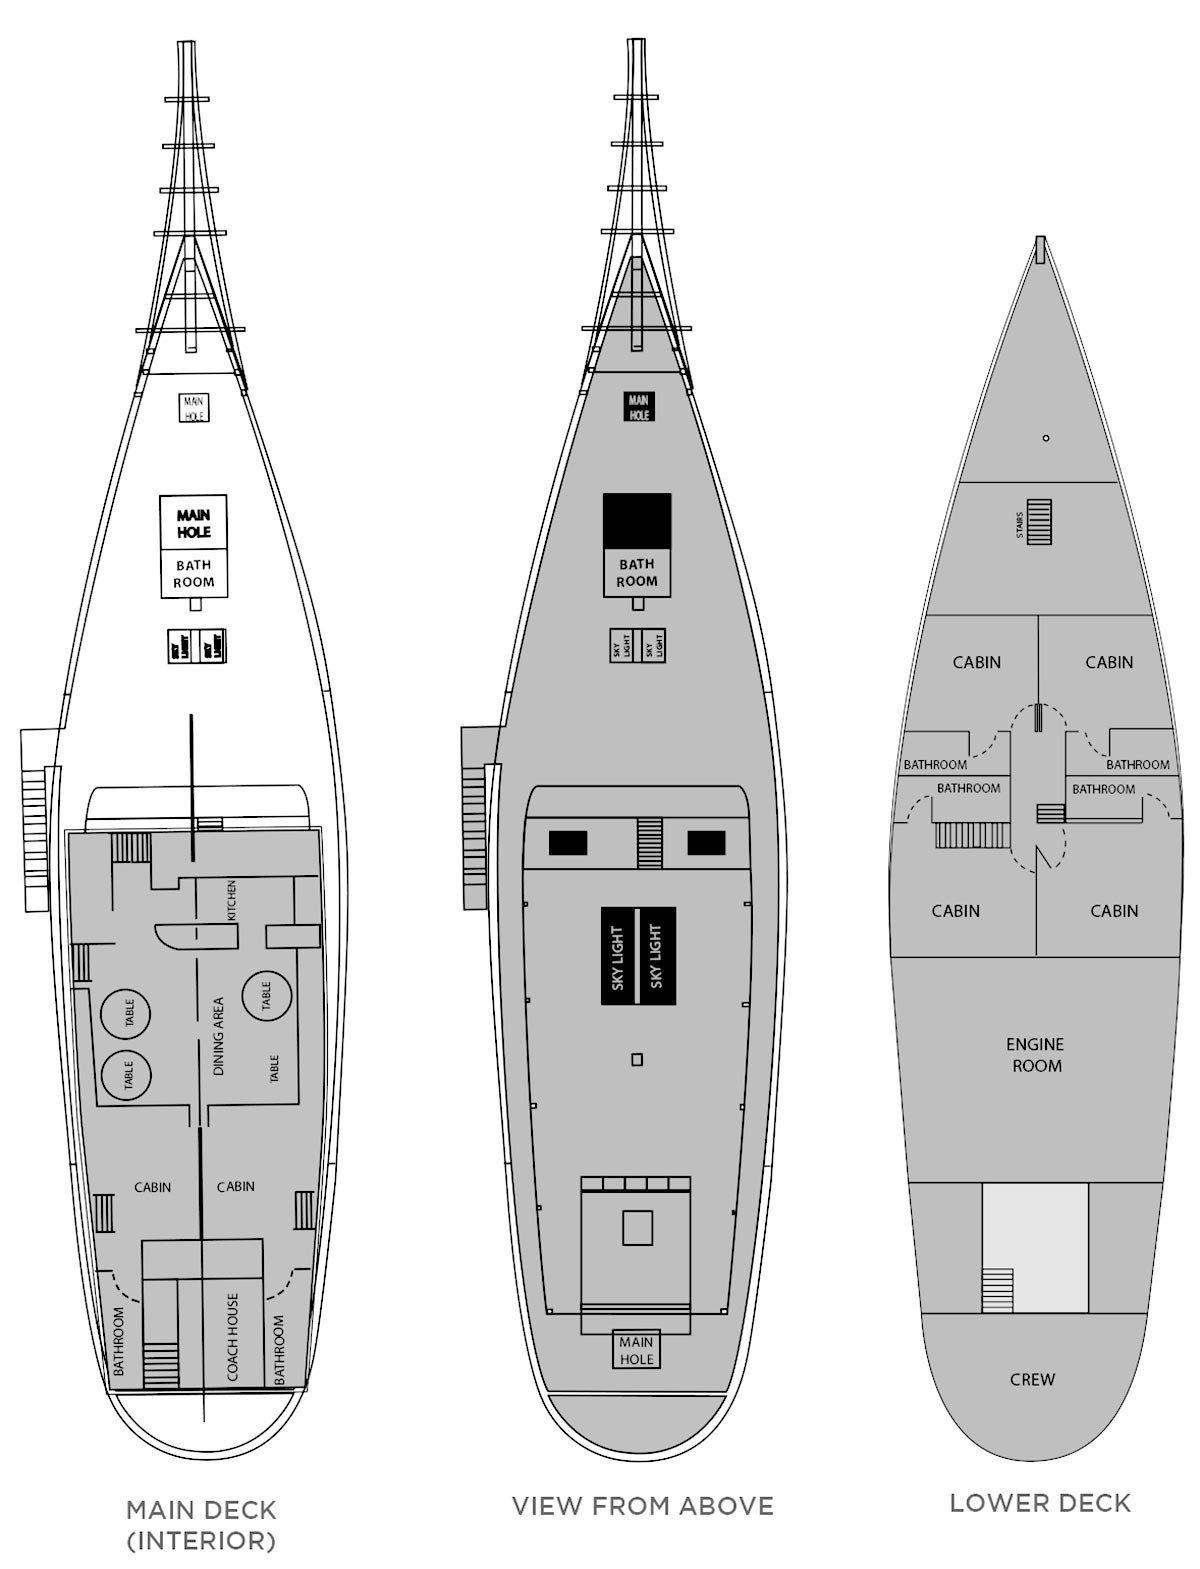 Traditional indonesian schooner deckplan